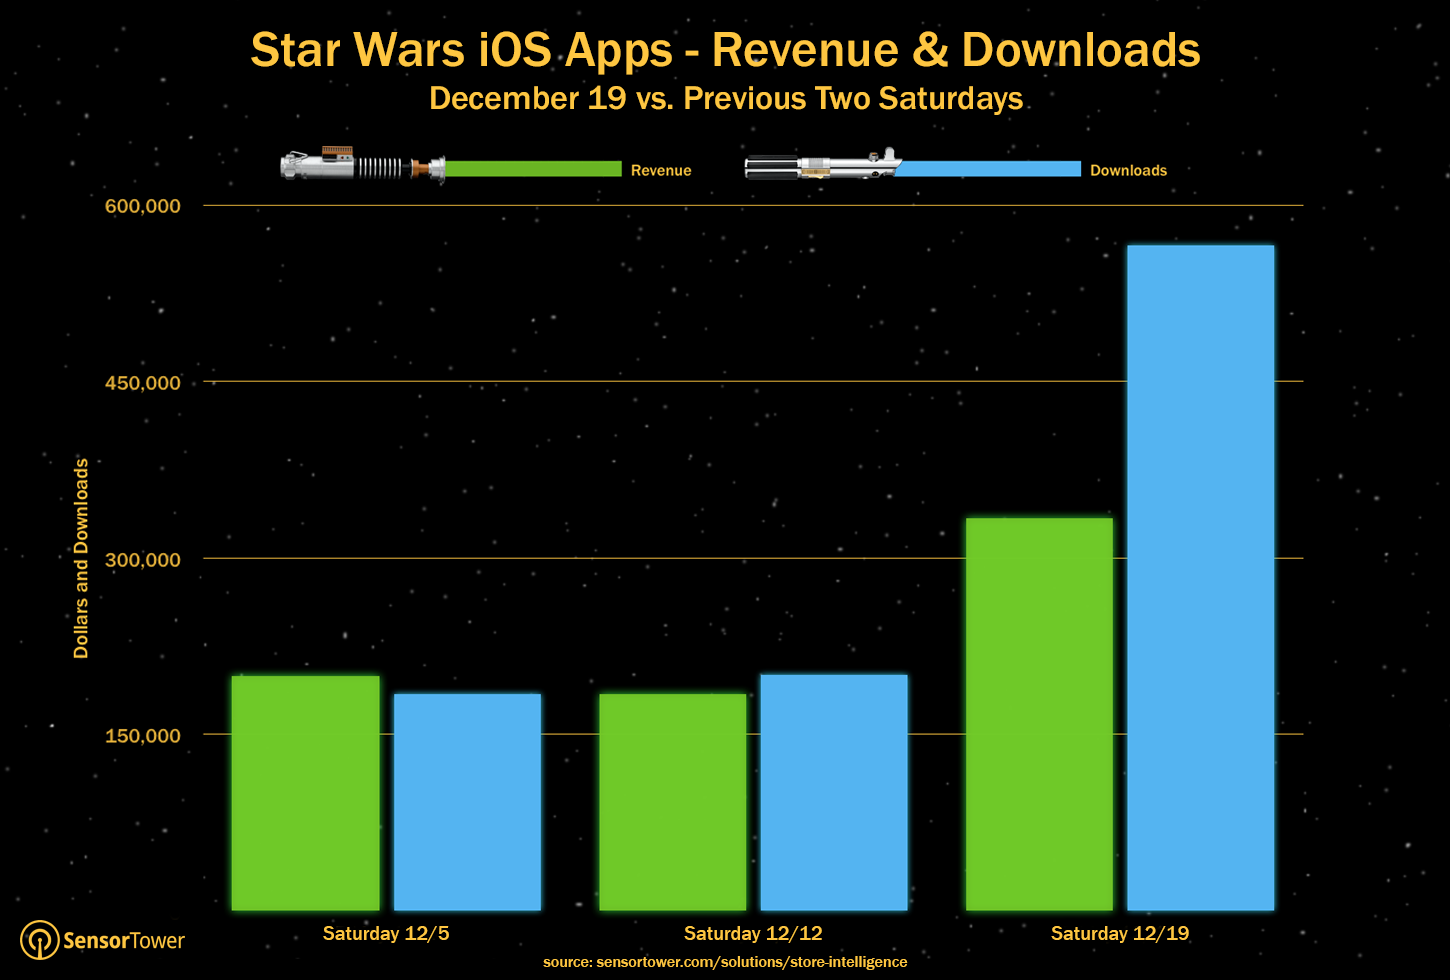 Fans got out of the theater and booted up their app markets looking for more.